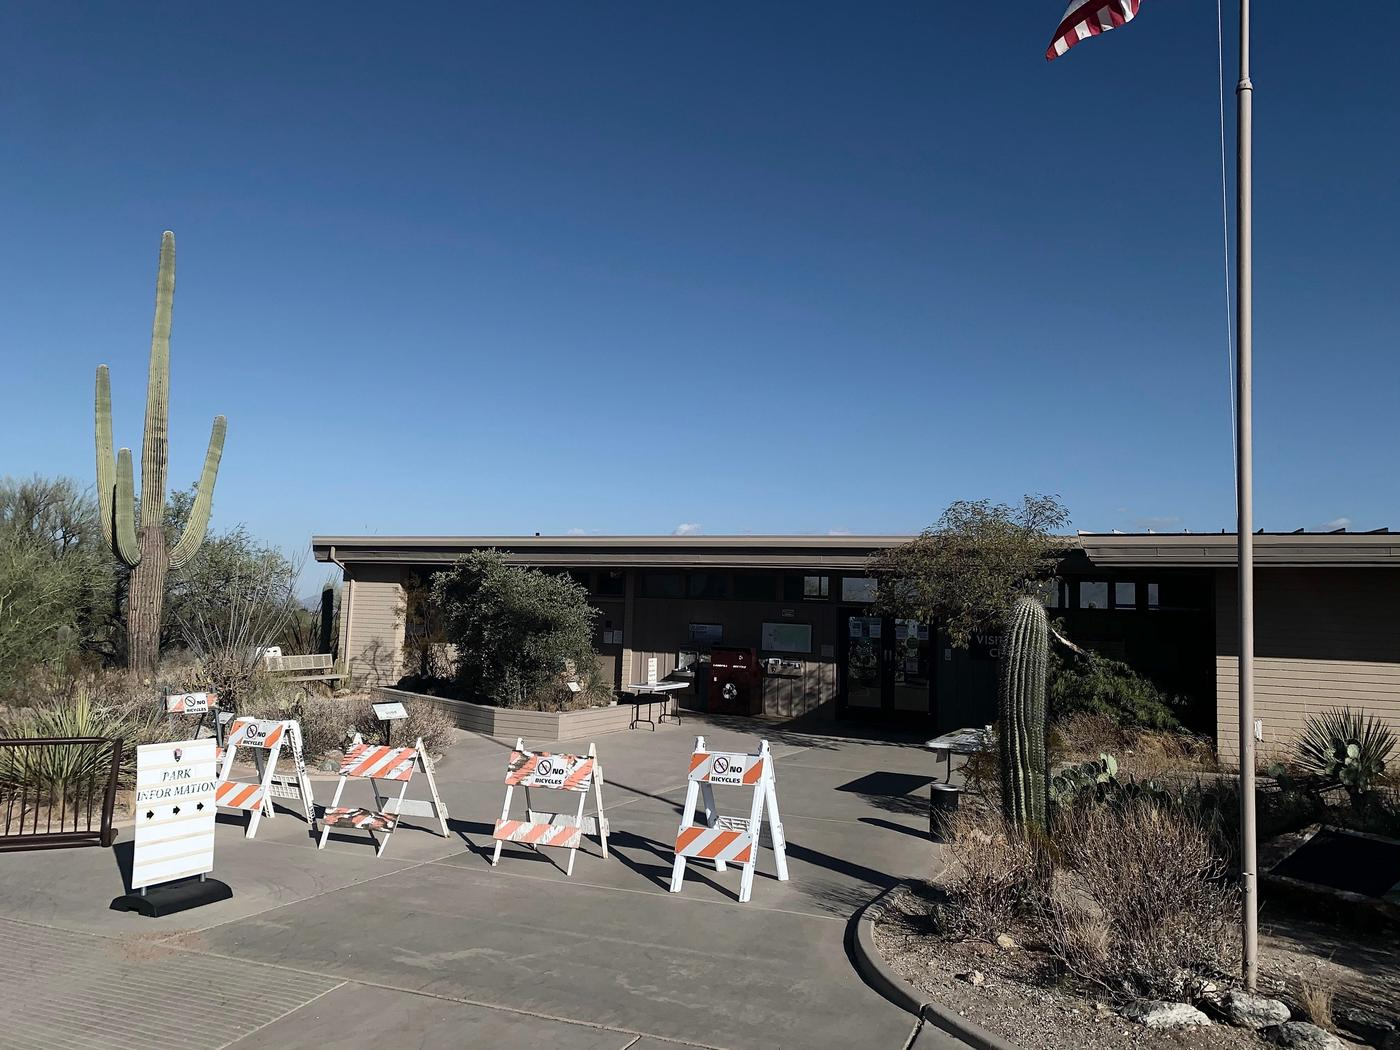 Rincon Mountain District Visitor CenterThe Rincon Mountain Visitor Center is a great place to get water, information and souvenirs